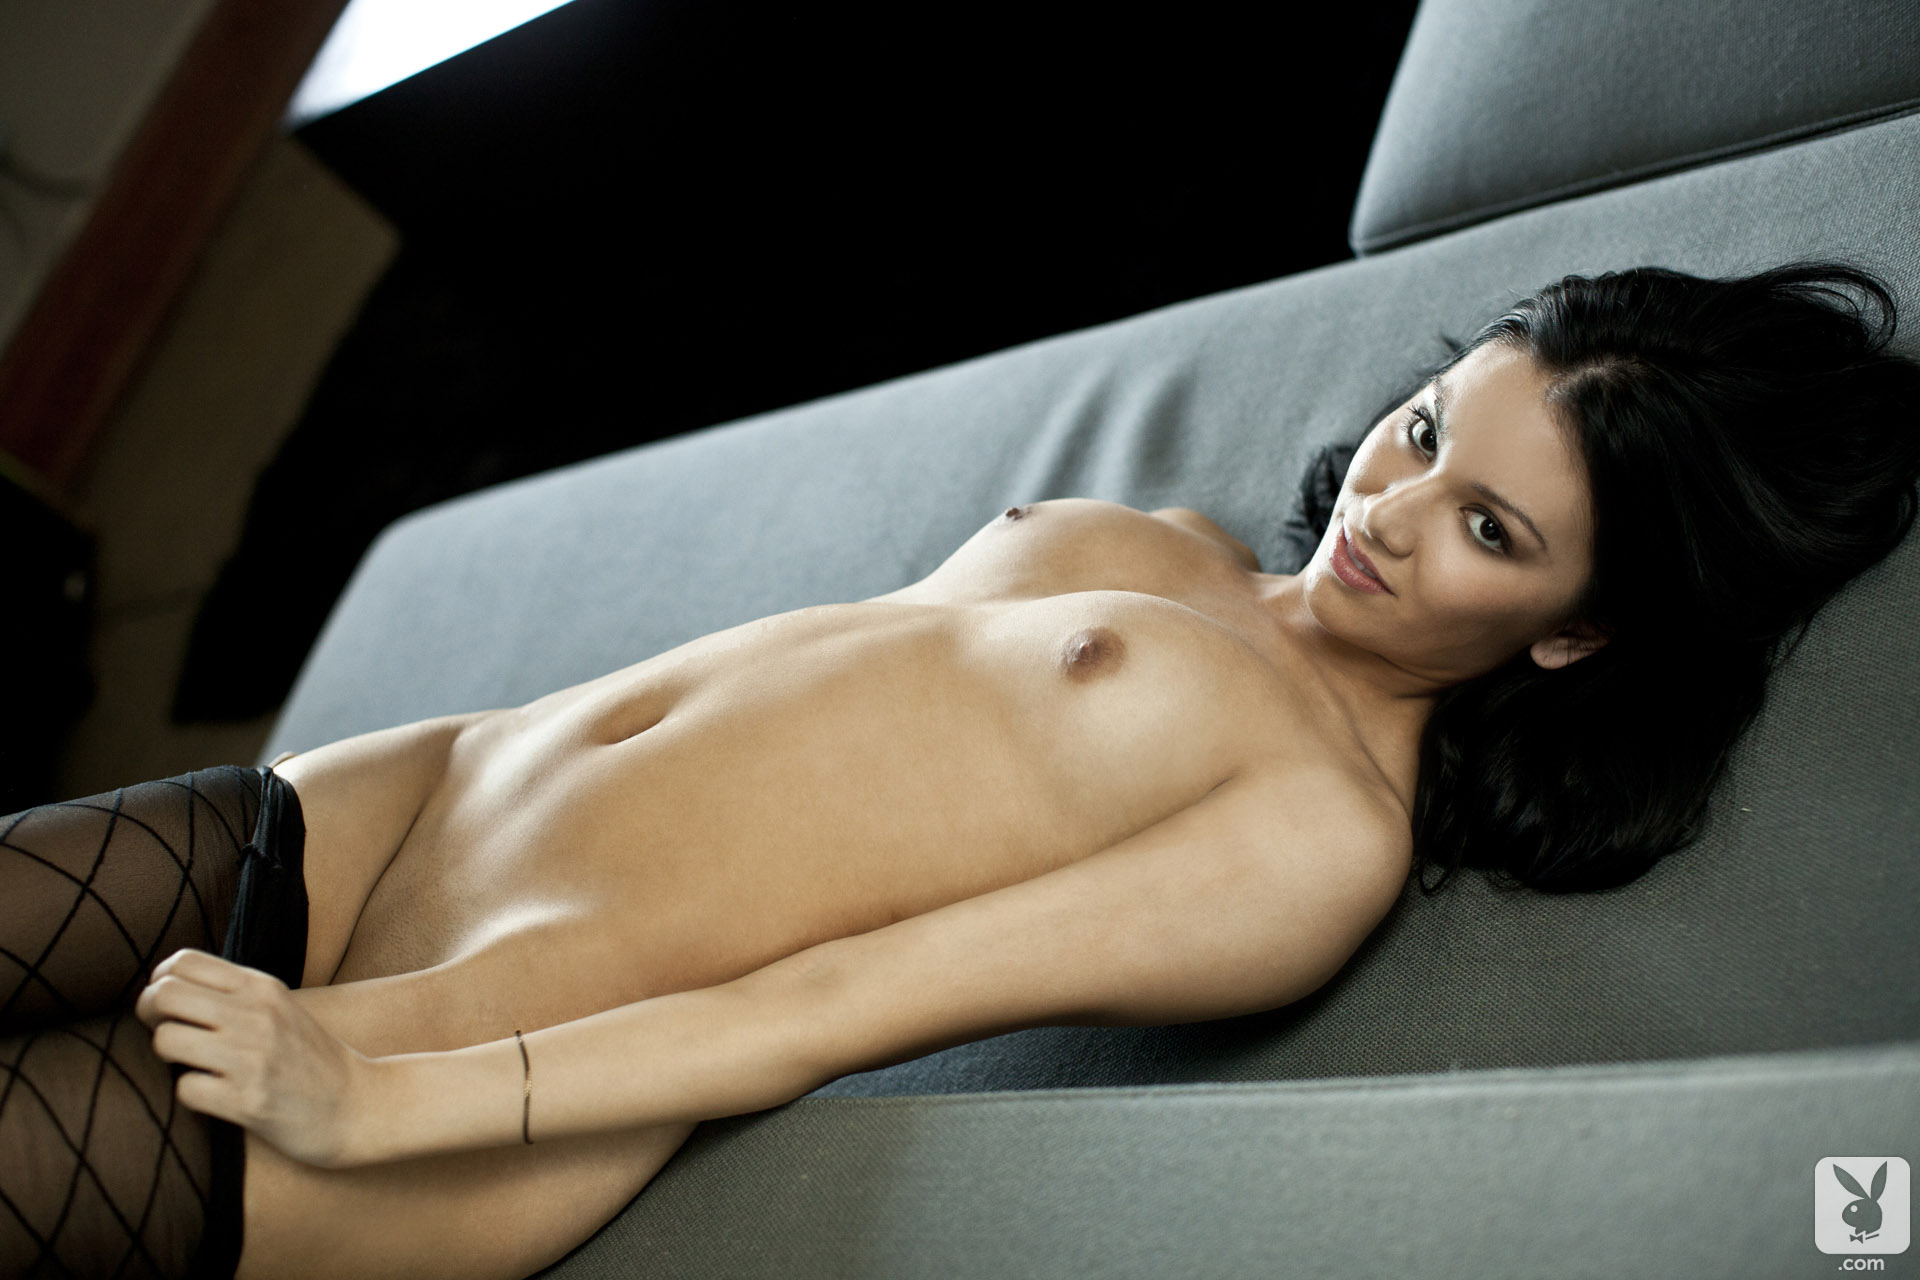 Better, perhaps, Amateur anna marie naked